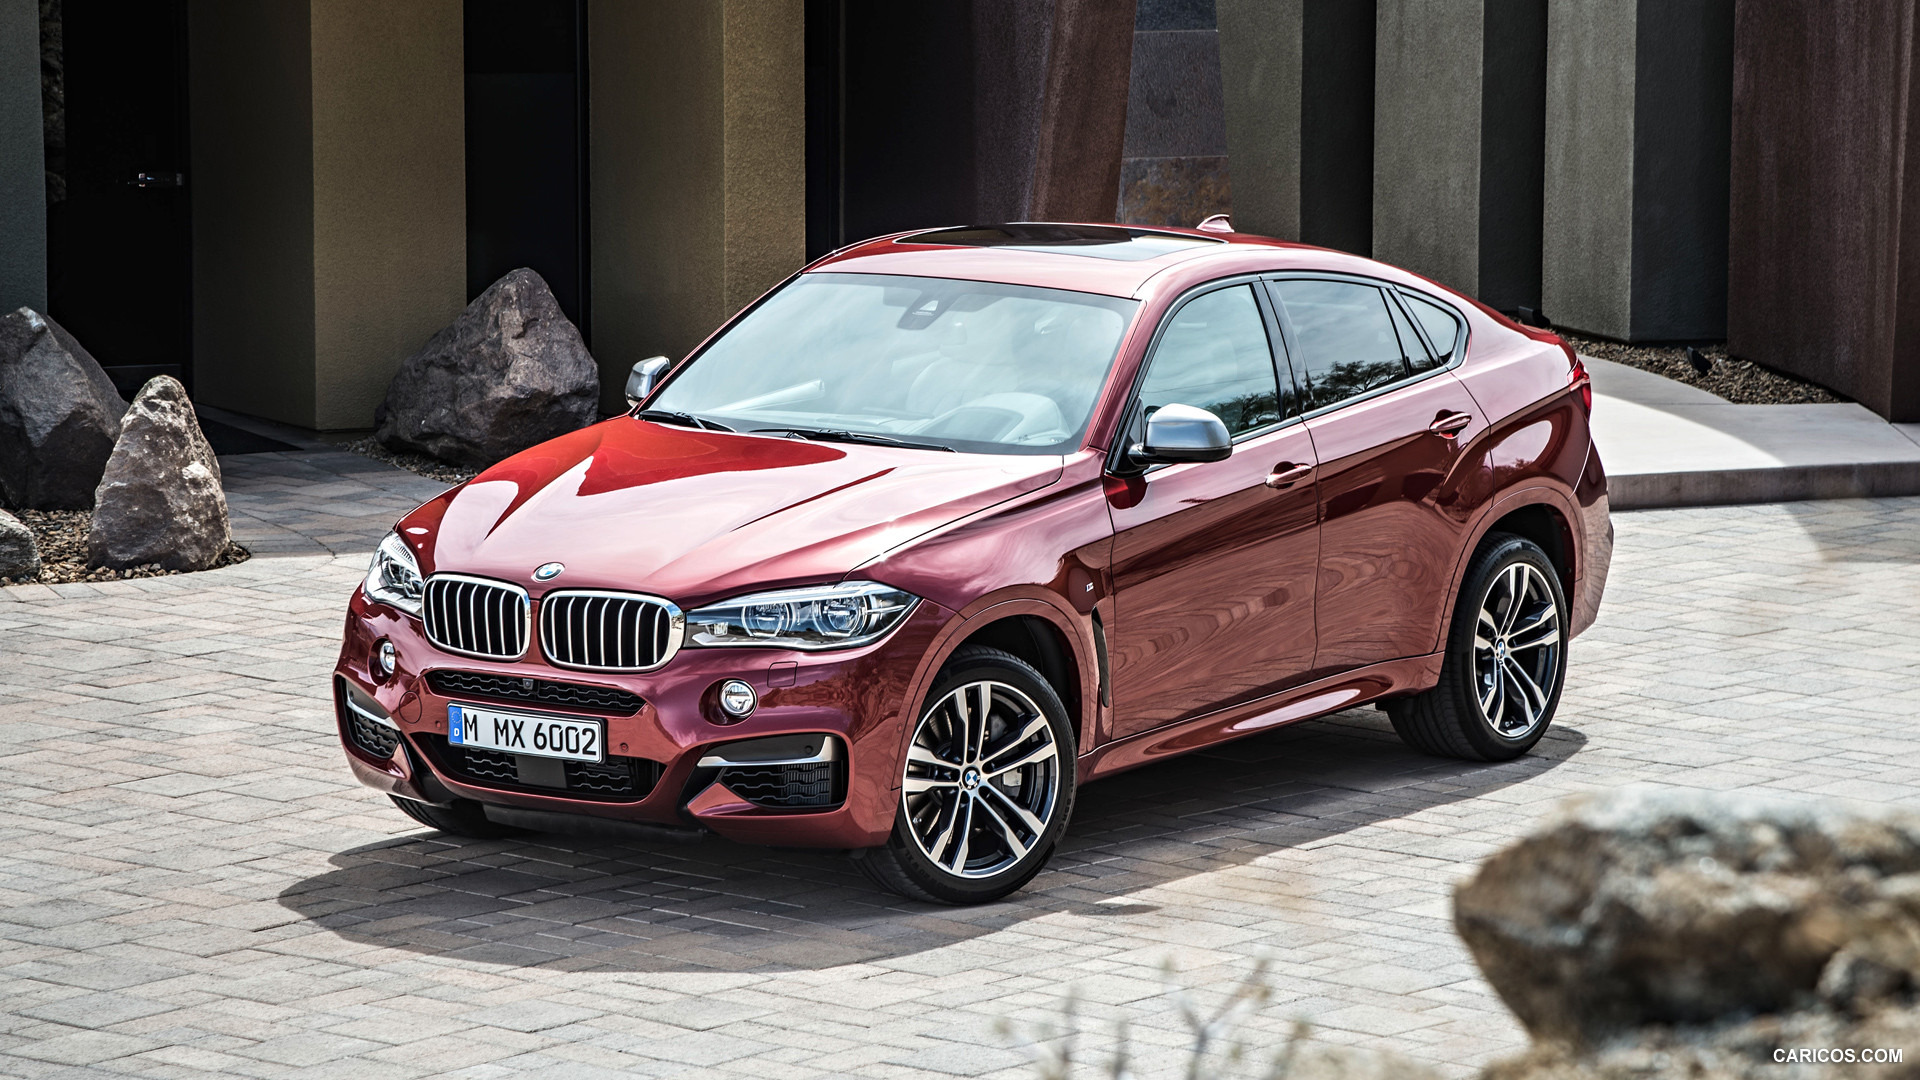 bmw x6 m50d picture 120654 bmw photo gallery. Black Bedroom Furniture Sets. Home Design Ideas